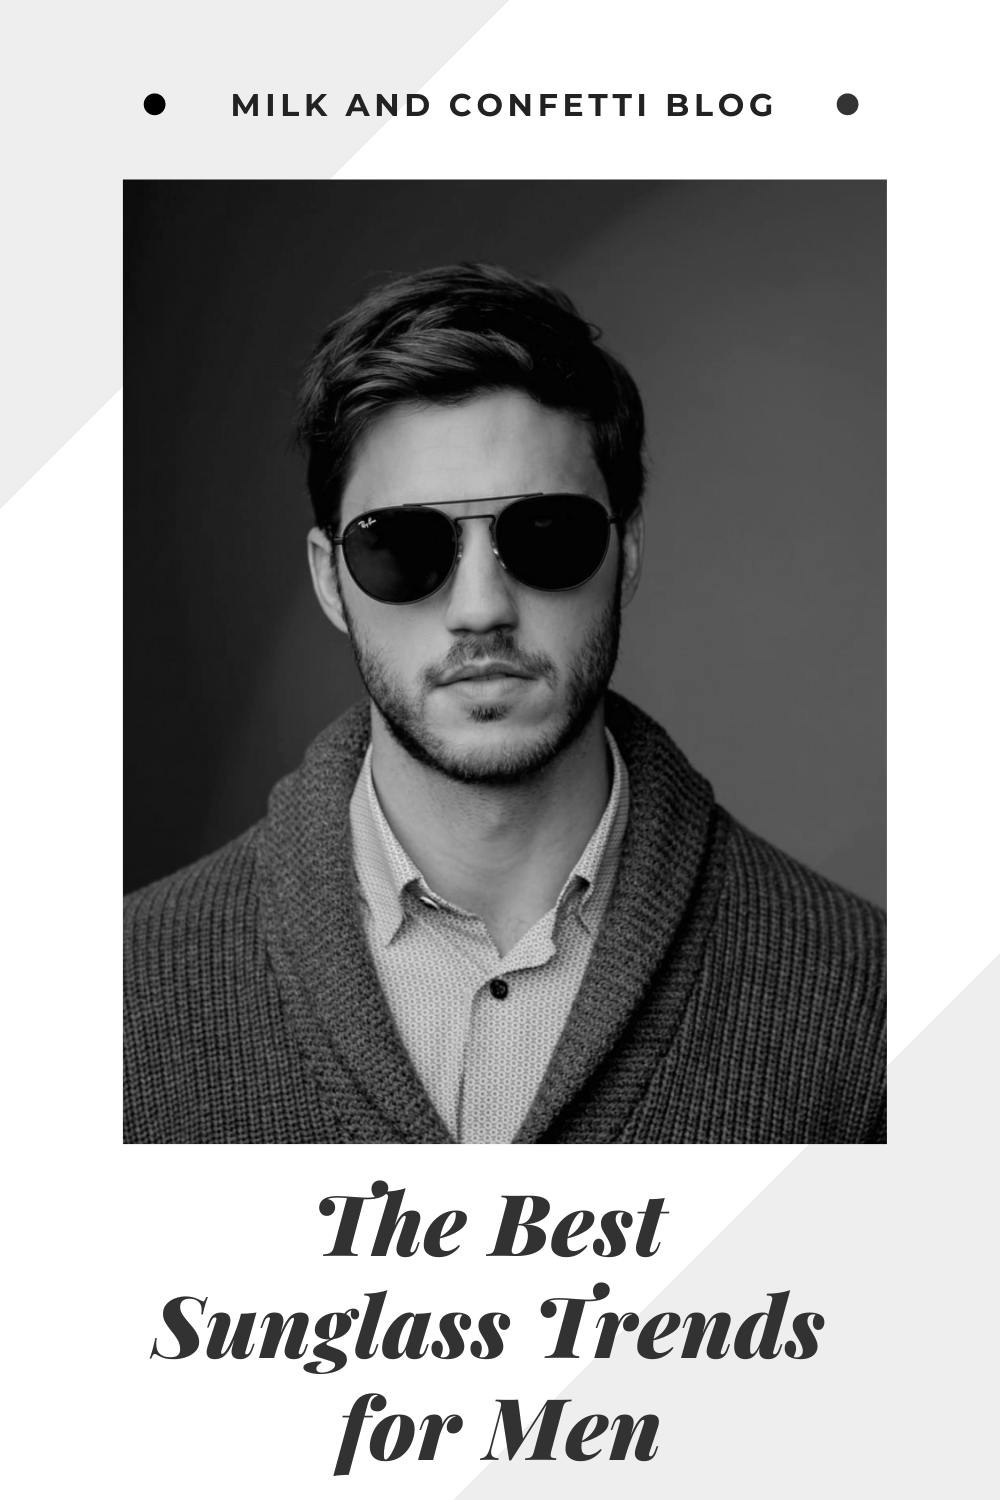 The top sunglasses trends for men.